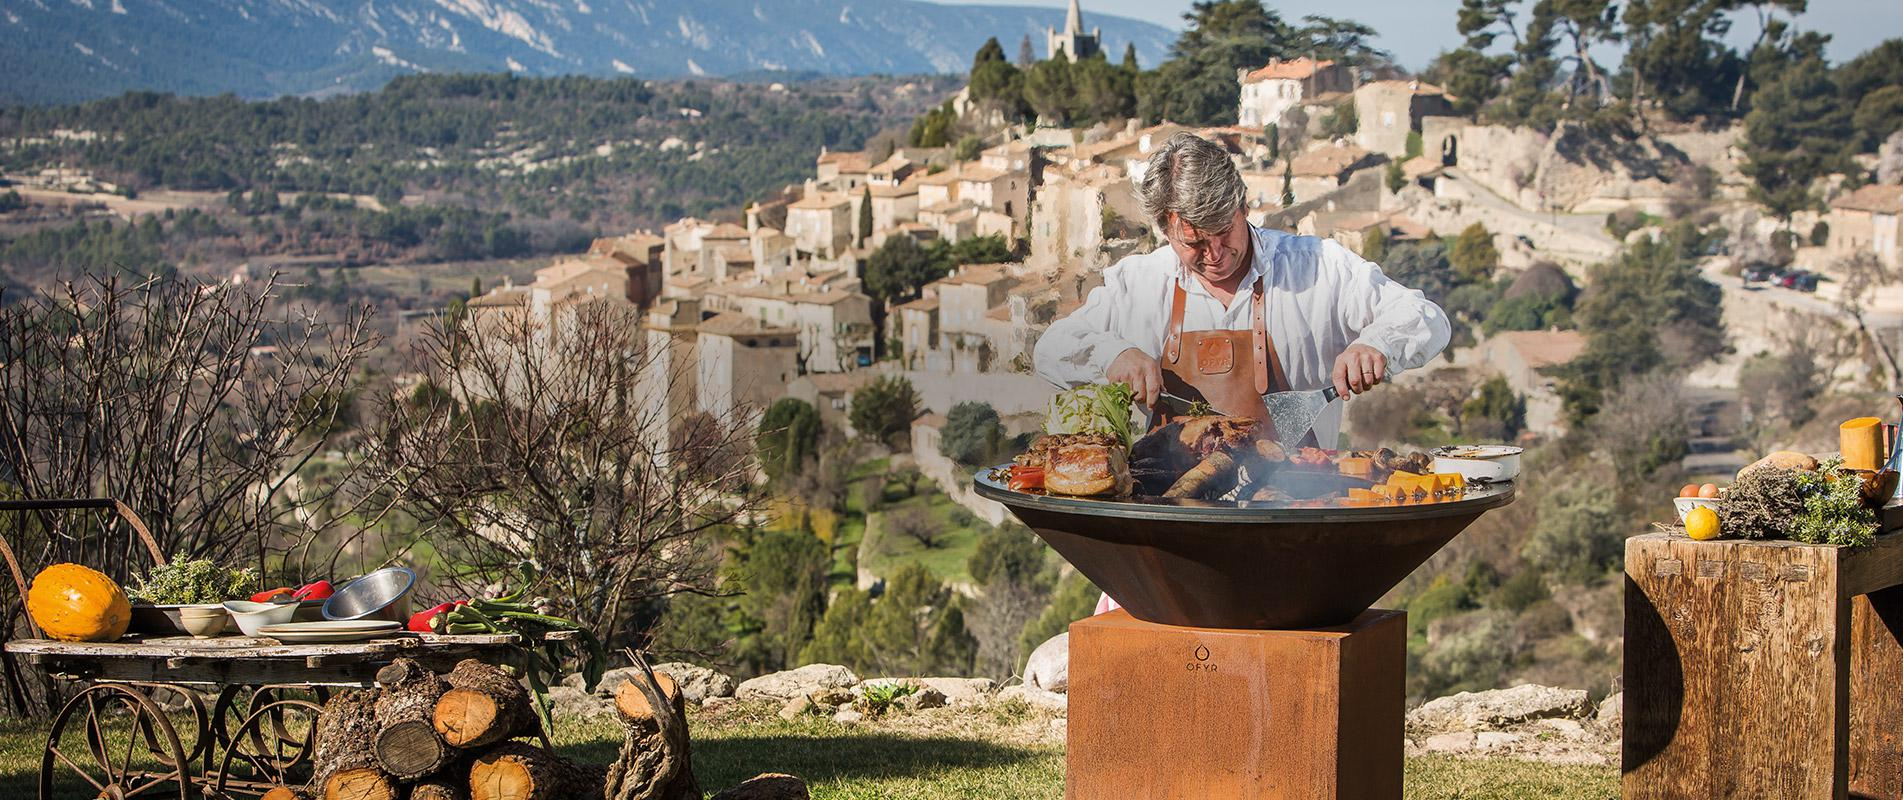 Outdoor cooking: a trend that is here to stay